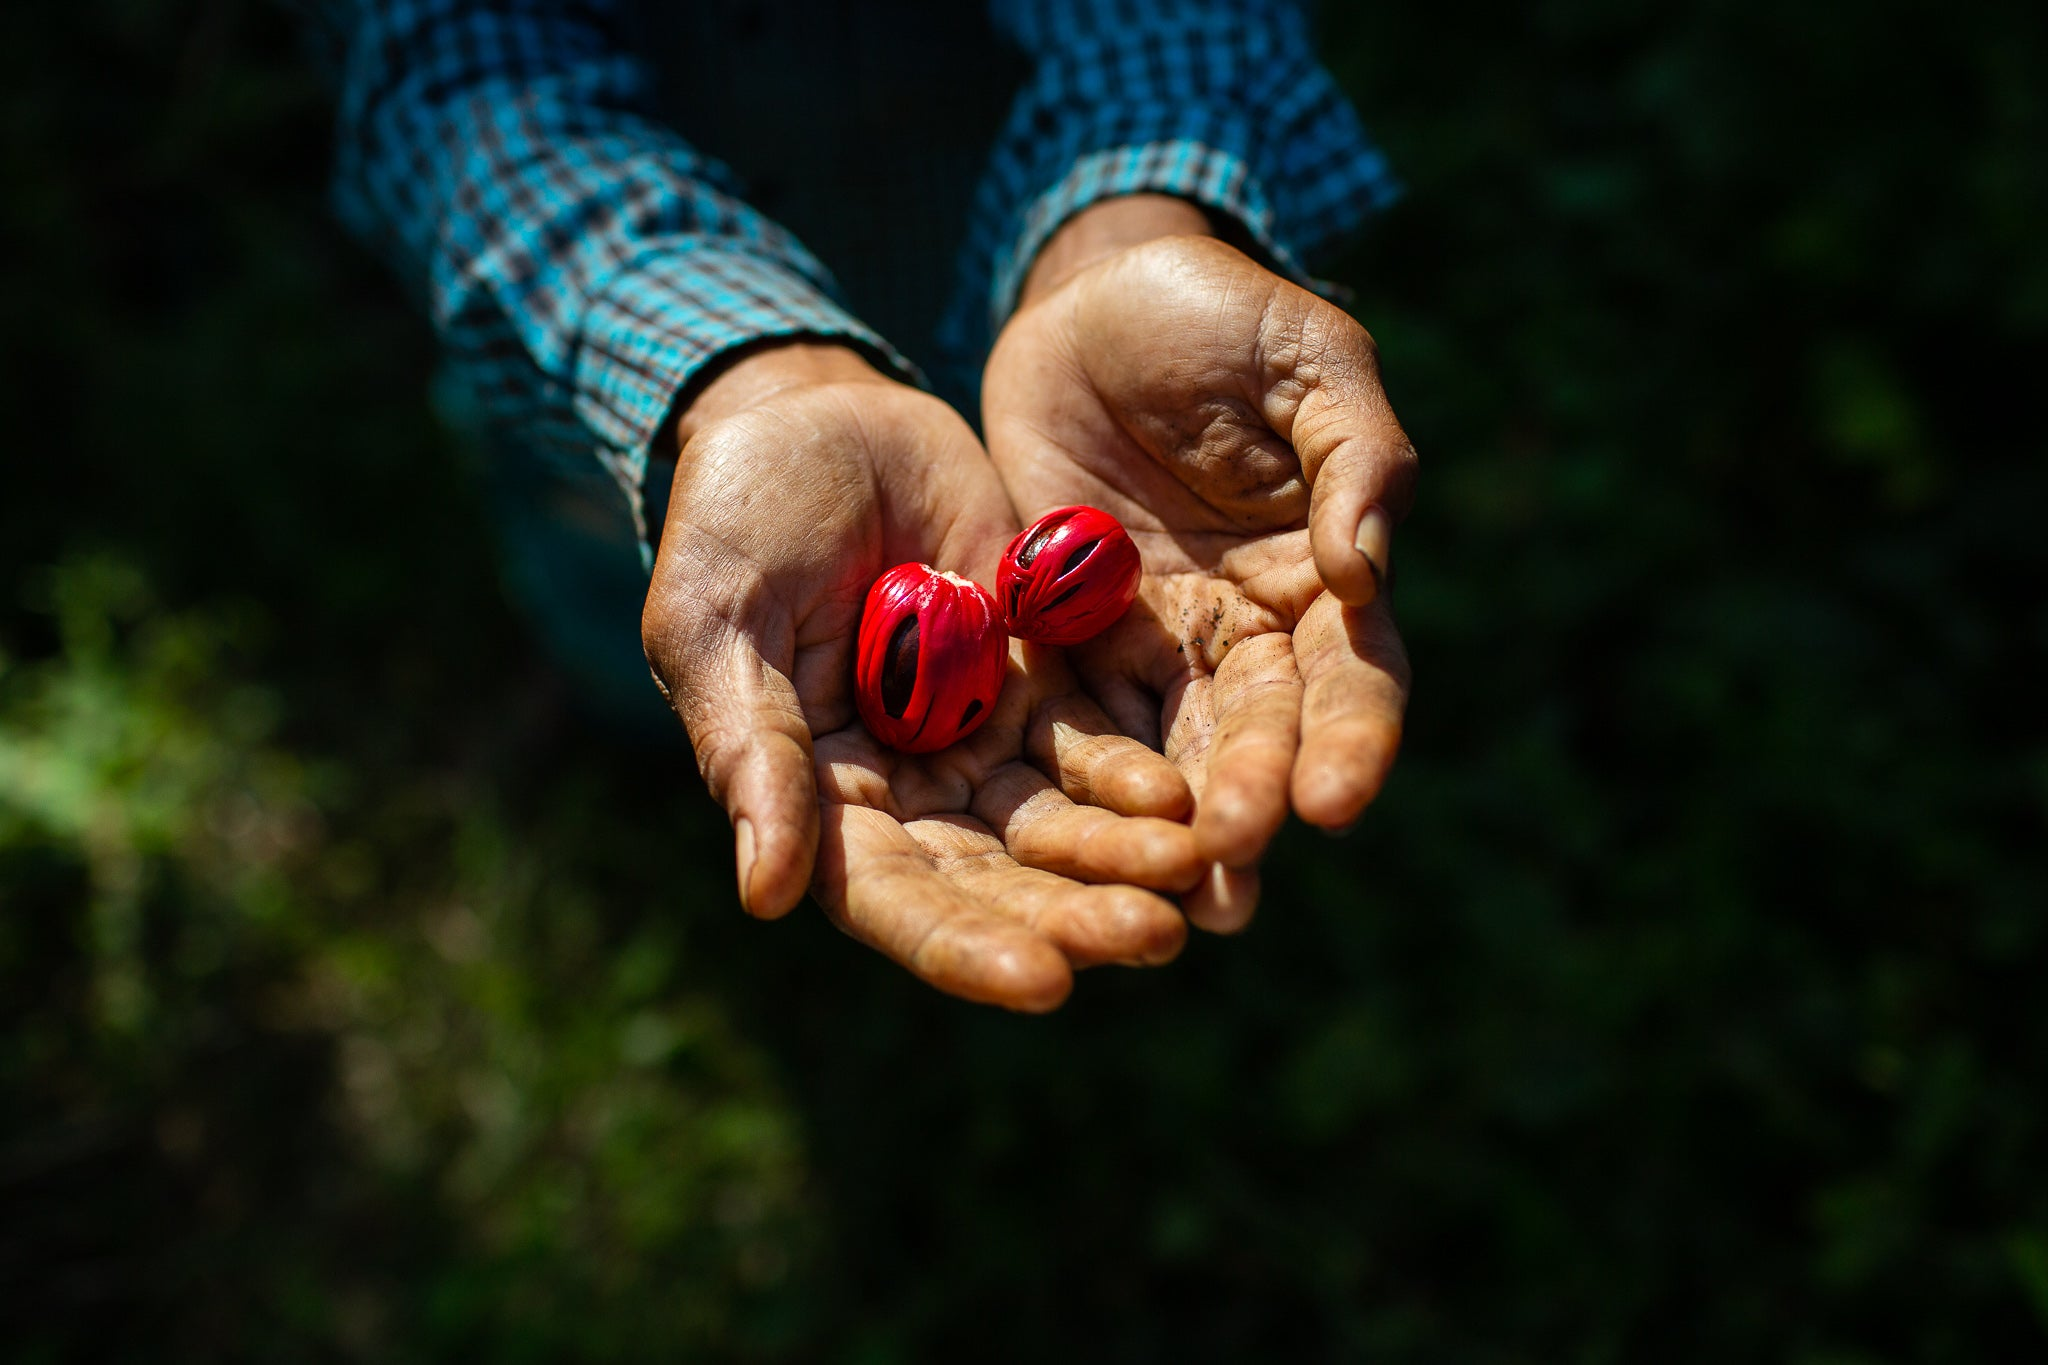 Hands holding two nutmeg-mace pods (bright reddish-pink mace wraps around dark inner nutmeg)